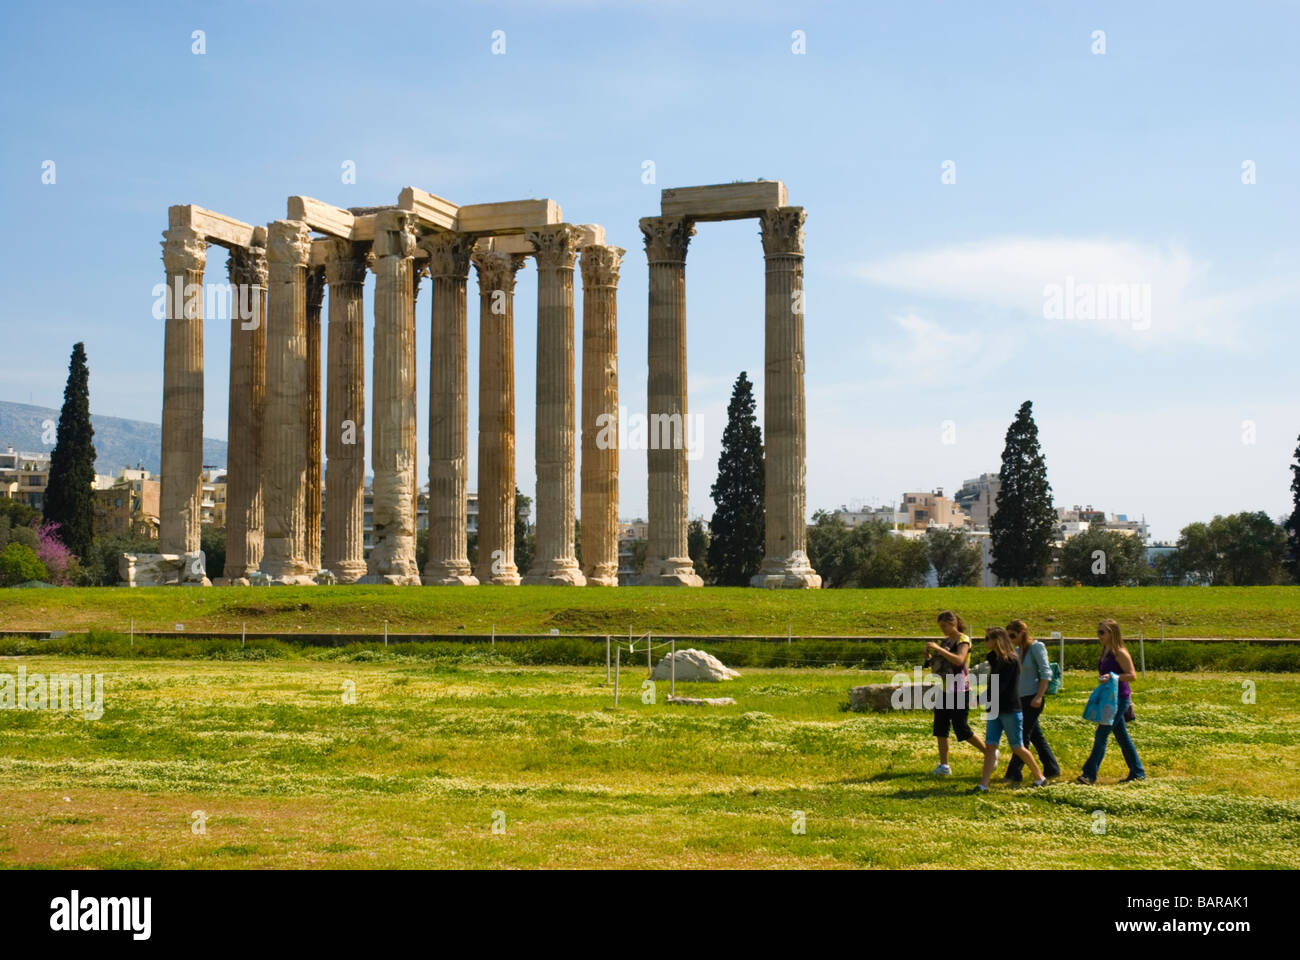 Ruins of Temple of Olympian Zeus site in central Athens Greece Europe - Stock Image